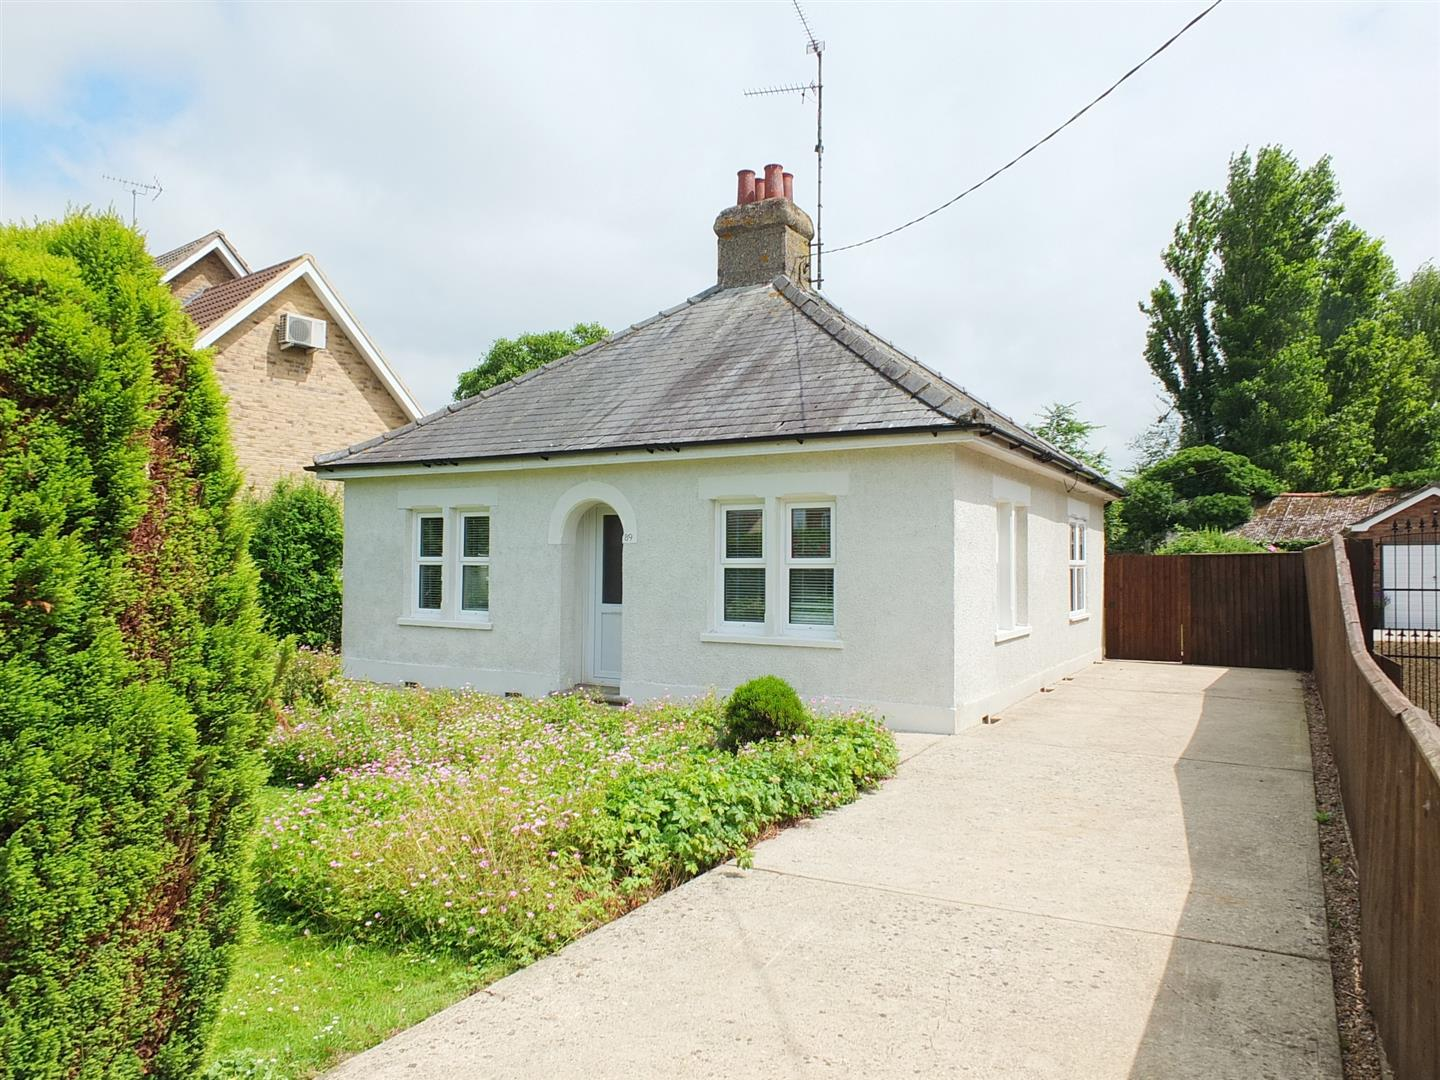 3 bed detached bungalow for sale in Seagate Road, Long Sutton Spalding  - Property Image 1